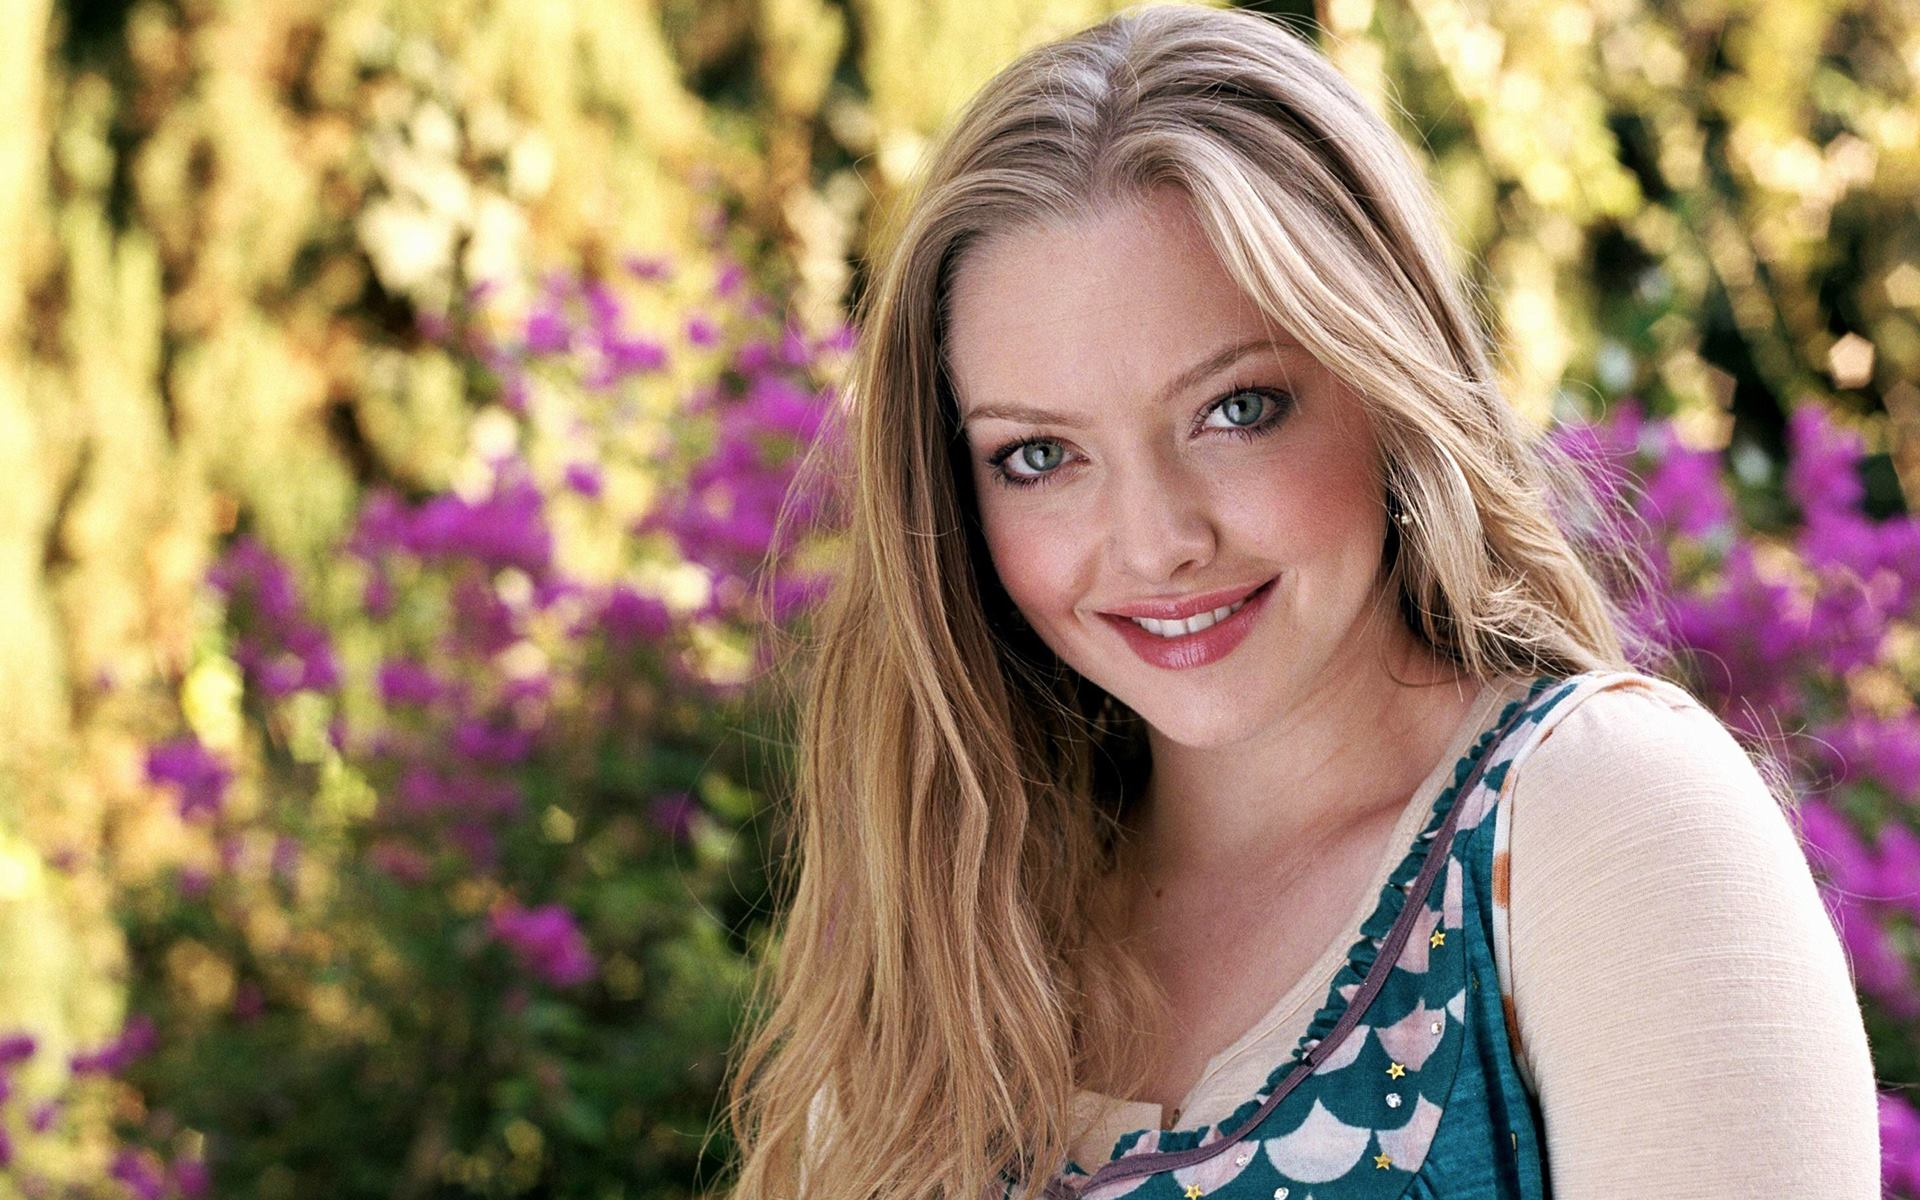 beautiful amanda seyfried laugh look download free hd photos